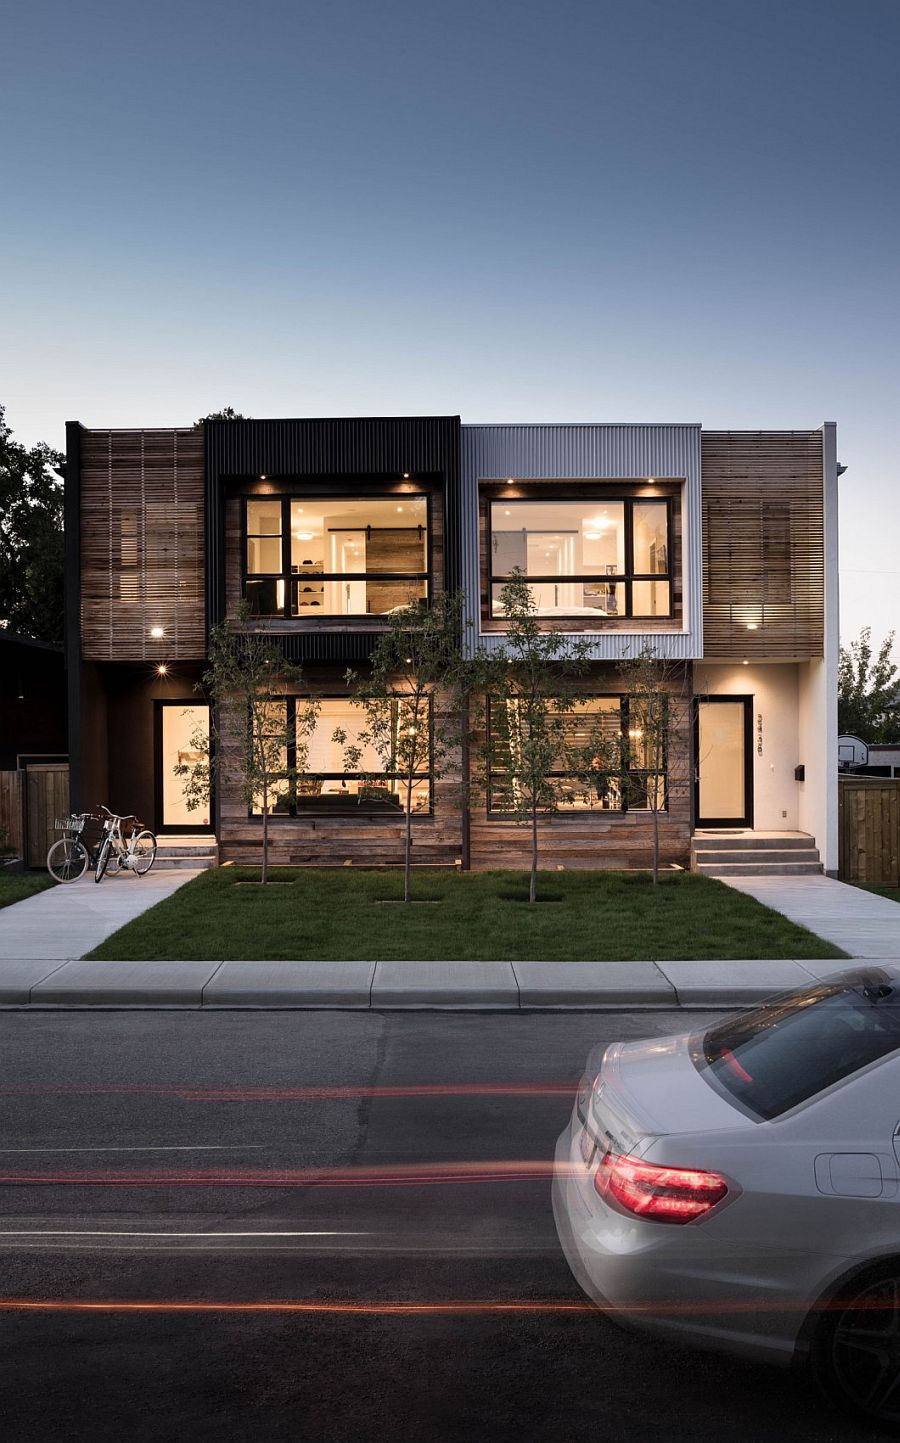 Stylish Modern Infill in Calgary by Beyond Homes Project b95: Urban Infill Epitomizes Elegantly Cultural Diversity of Calgary